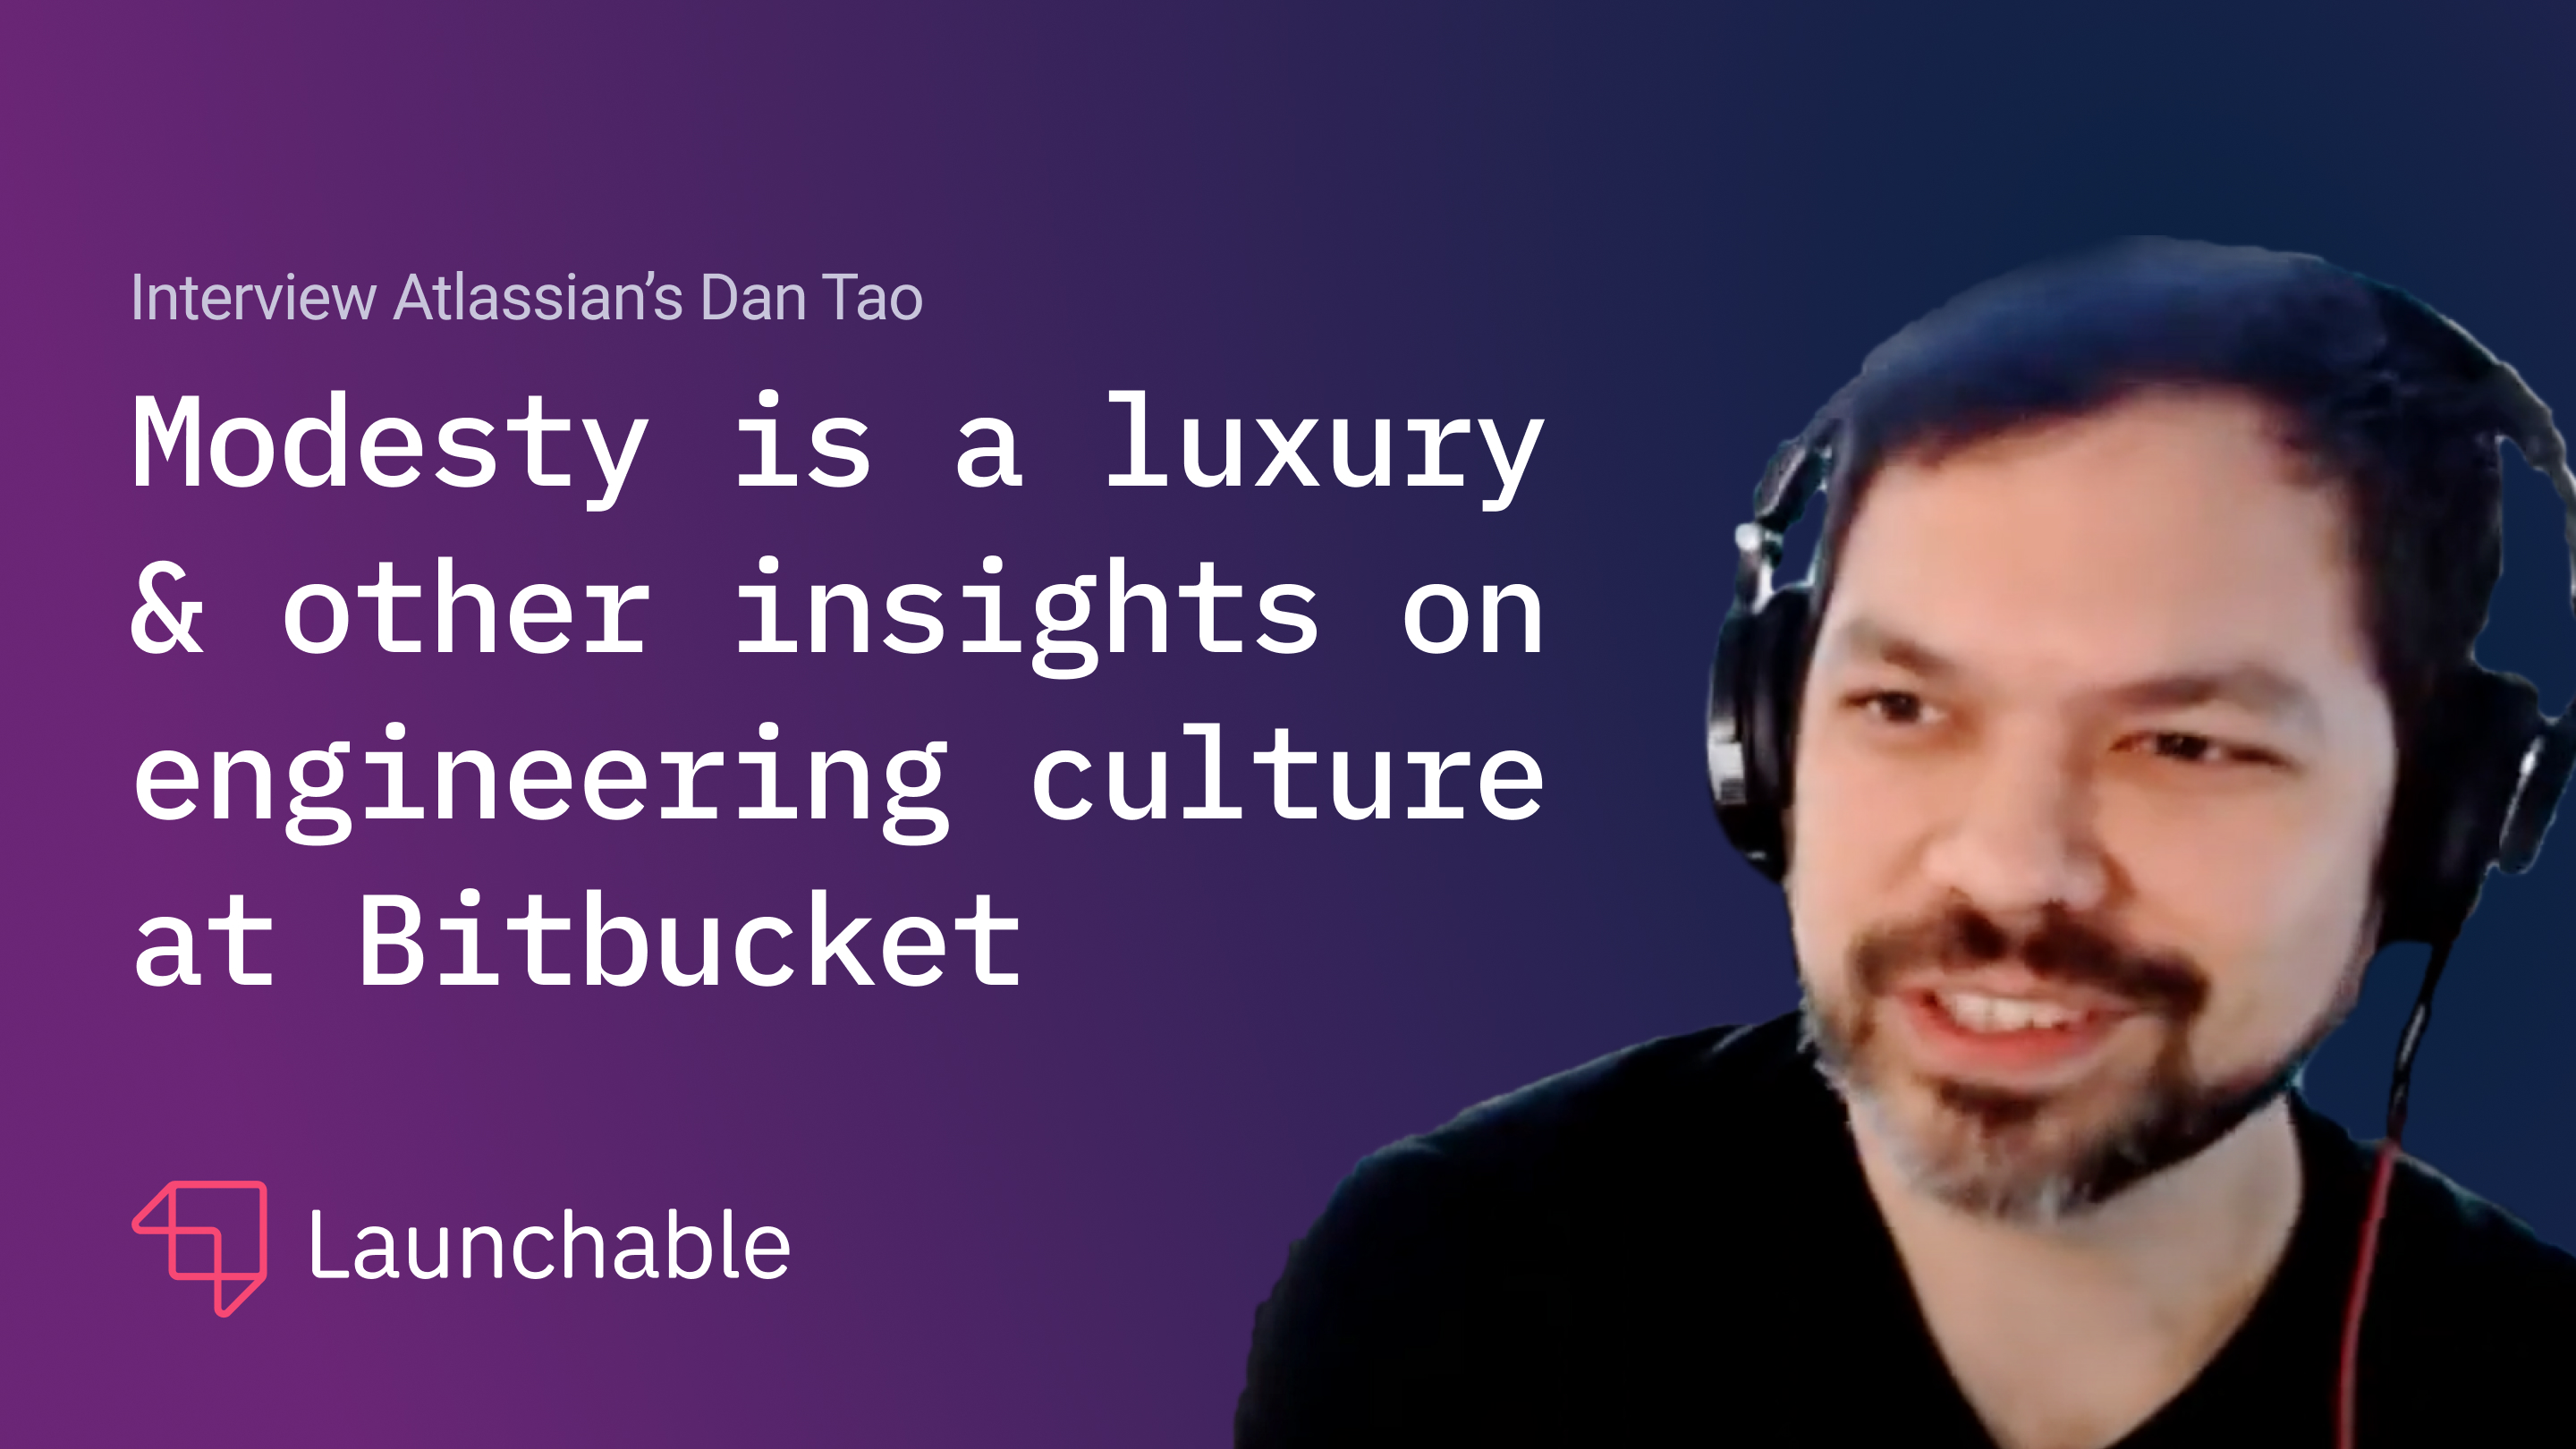 Modesty is a luxury & other insights: interview with Dan Tao